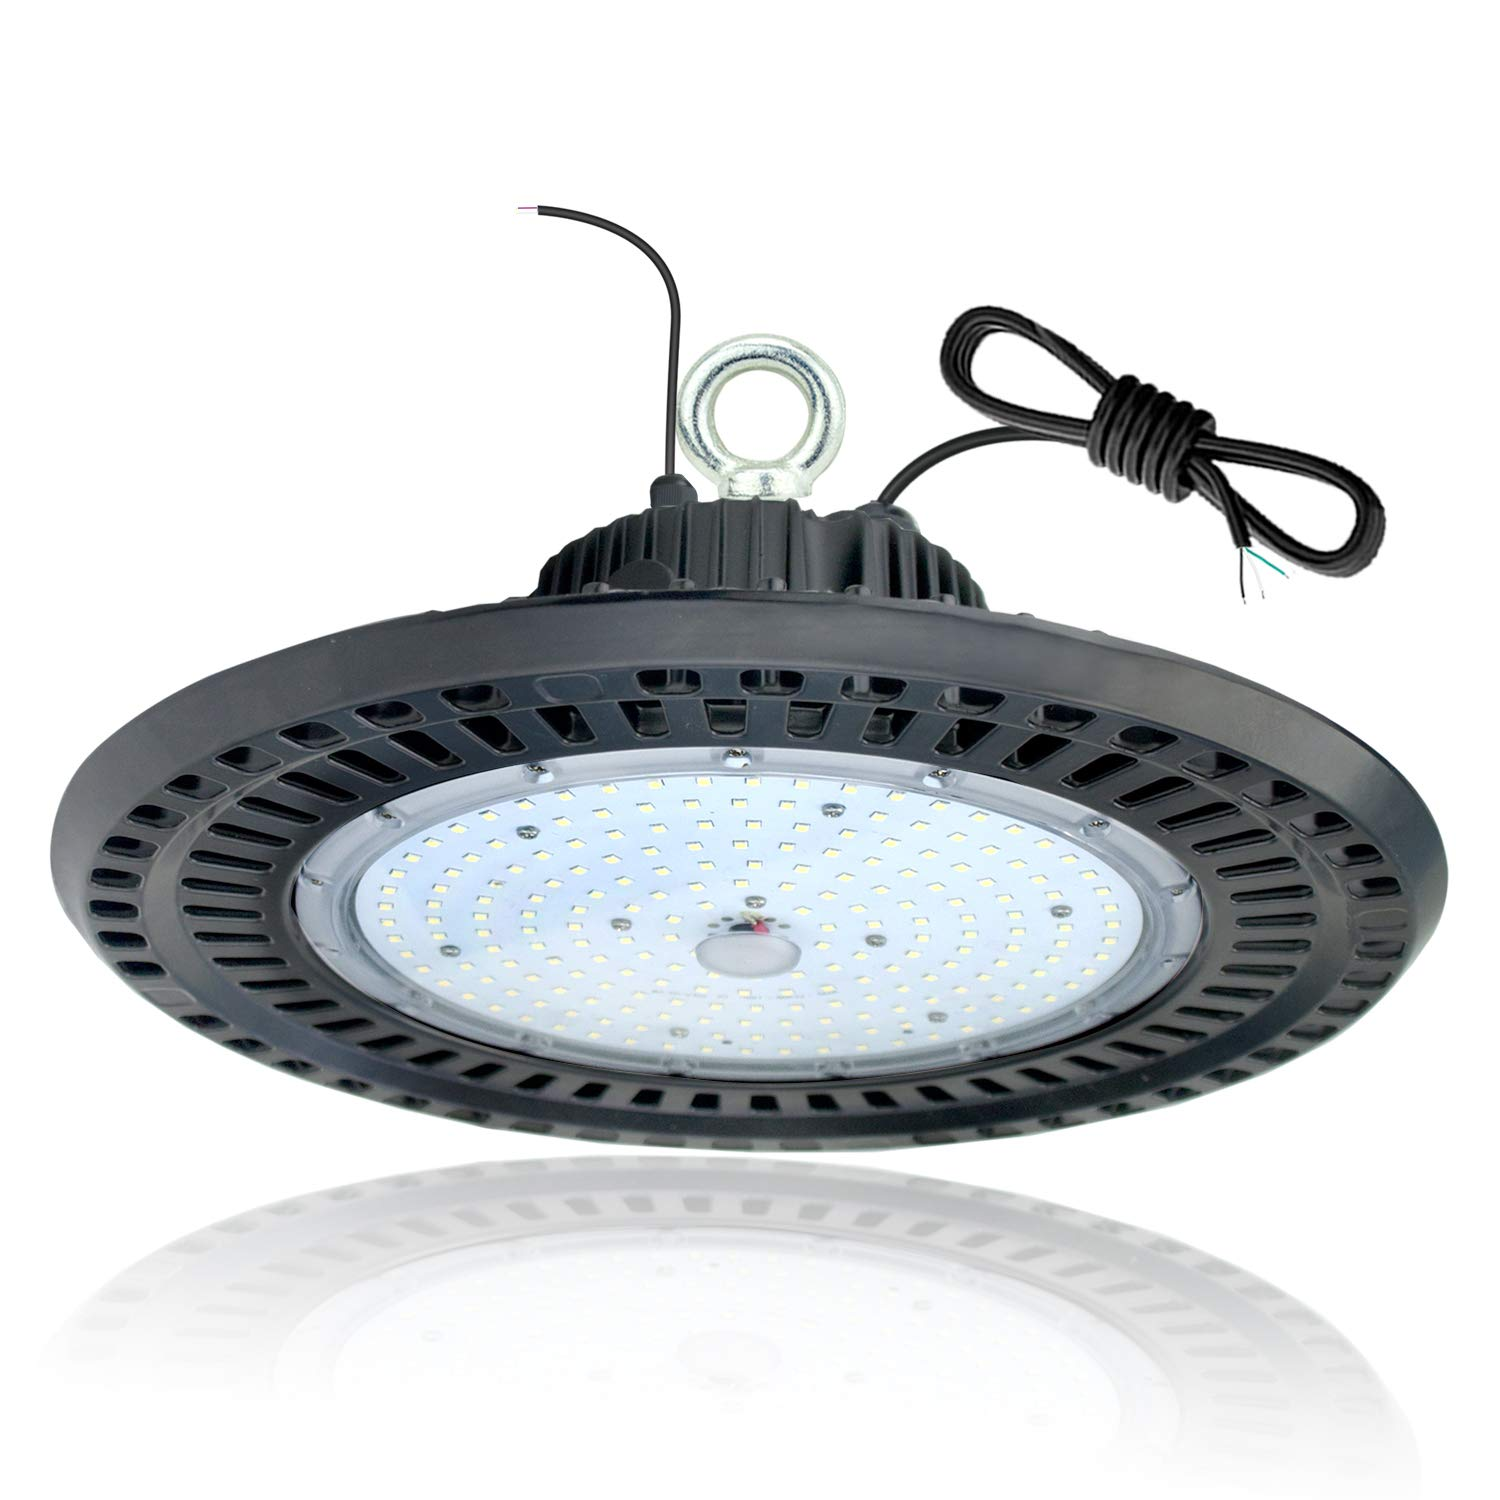 Advantages Of Using Led High Bay Lighting In Warehouses: Best UFO High Bay LED Lights